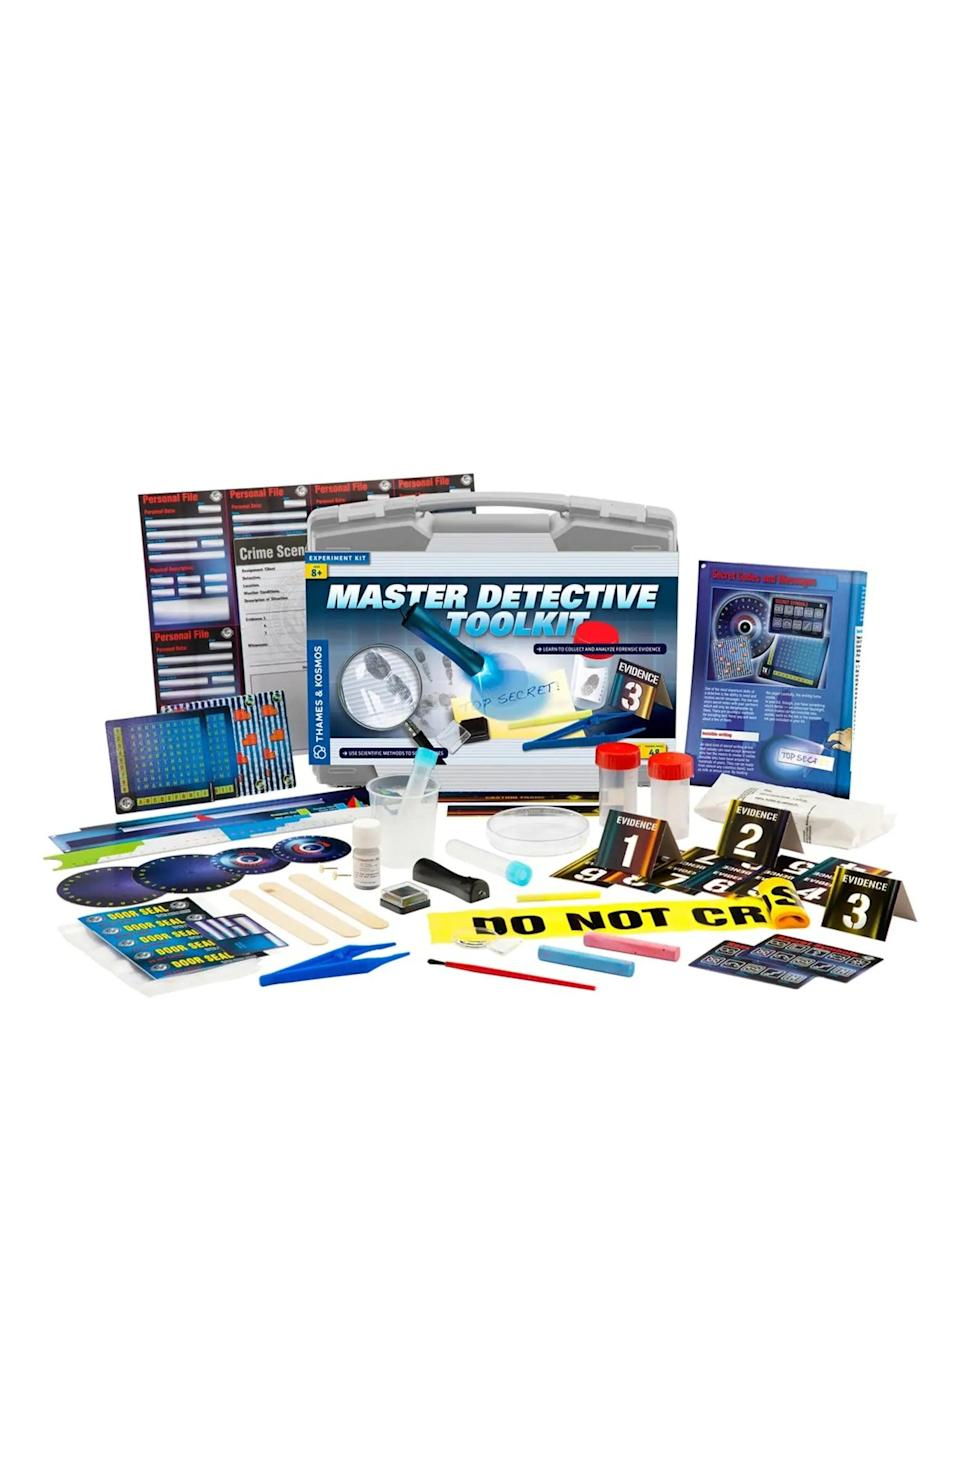 <p>A young detective will enjoy finding clues and using evidence to solve a crime with the <span>Master Detective Toolkit Experiment Kit</span> ($50).</p>